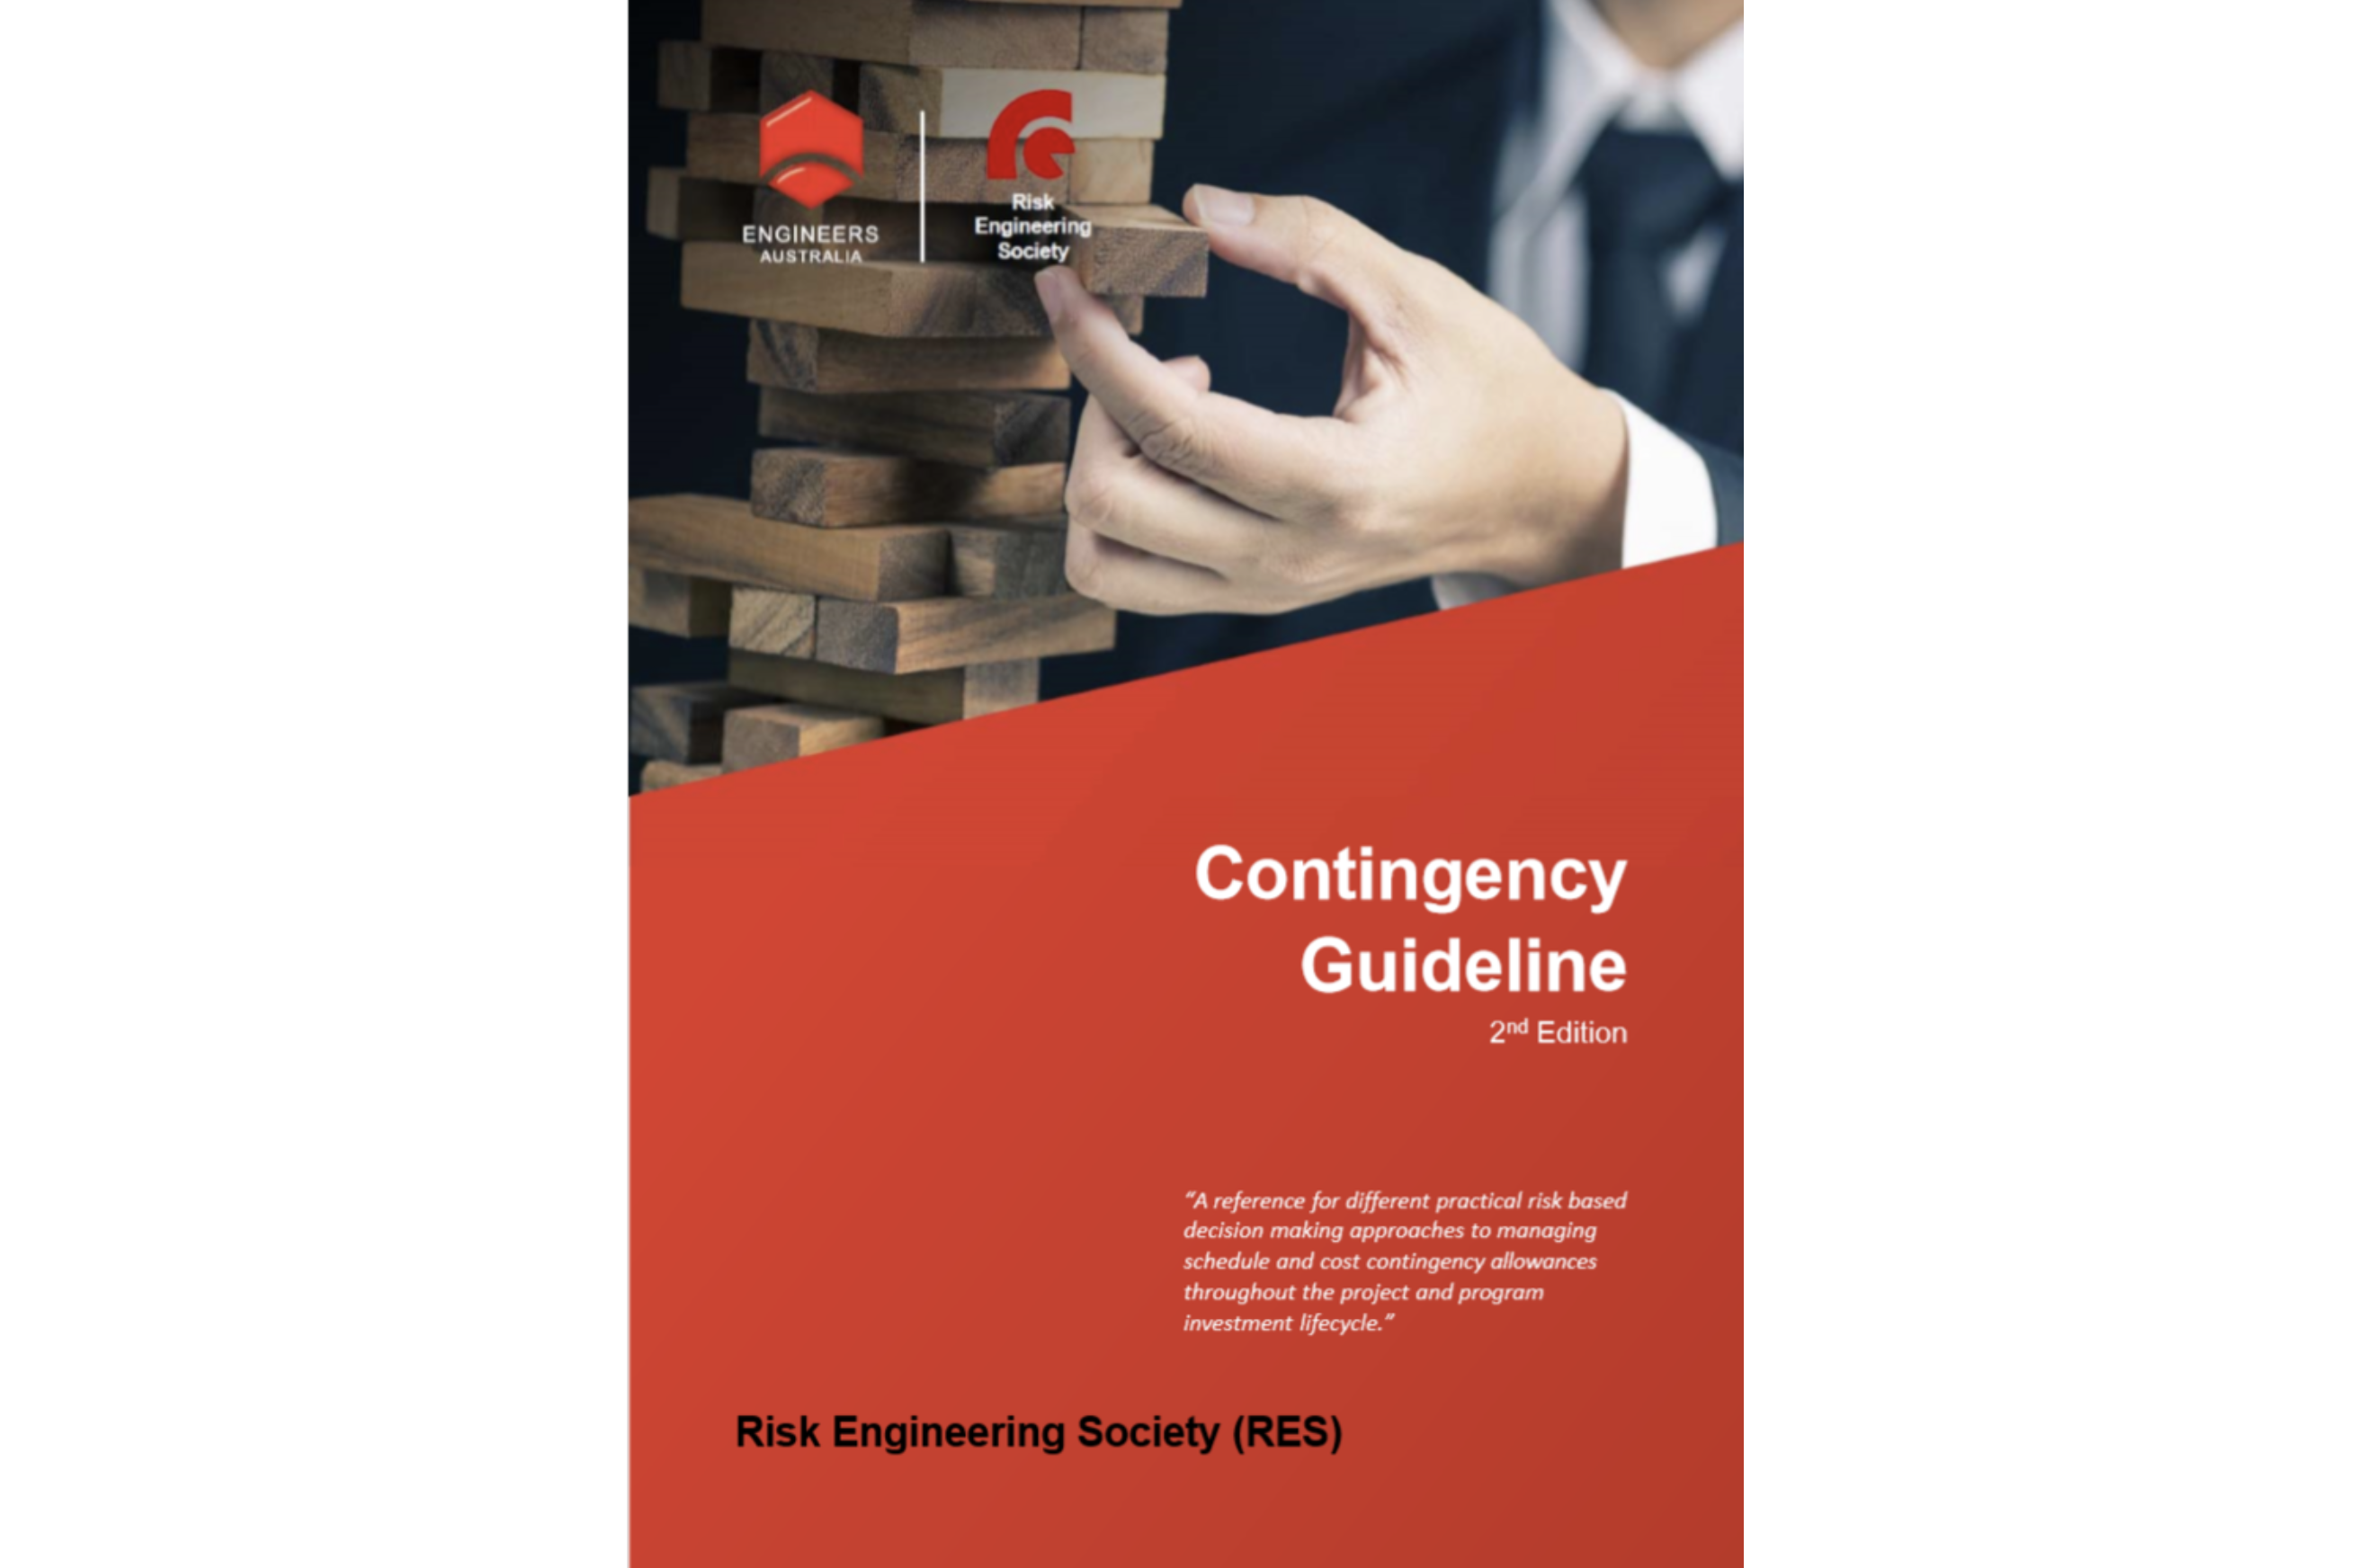 IRM endorsement of the Engineers Australia RES Contingency Guideline 2nd Ed